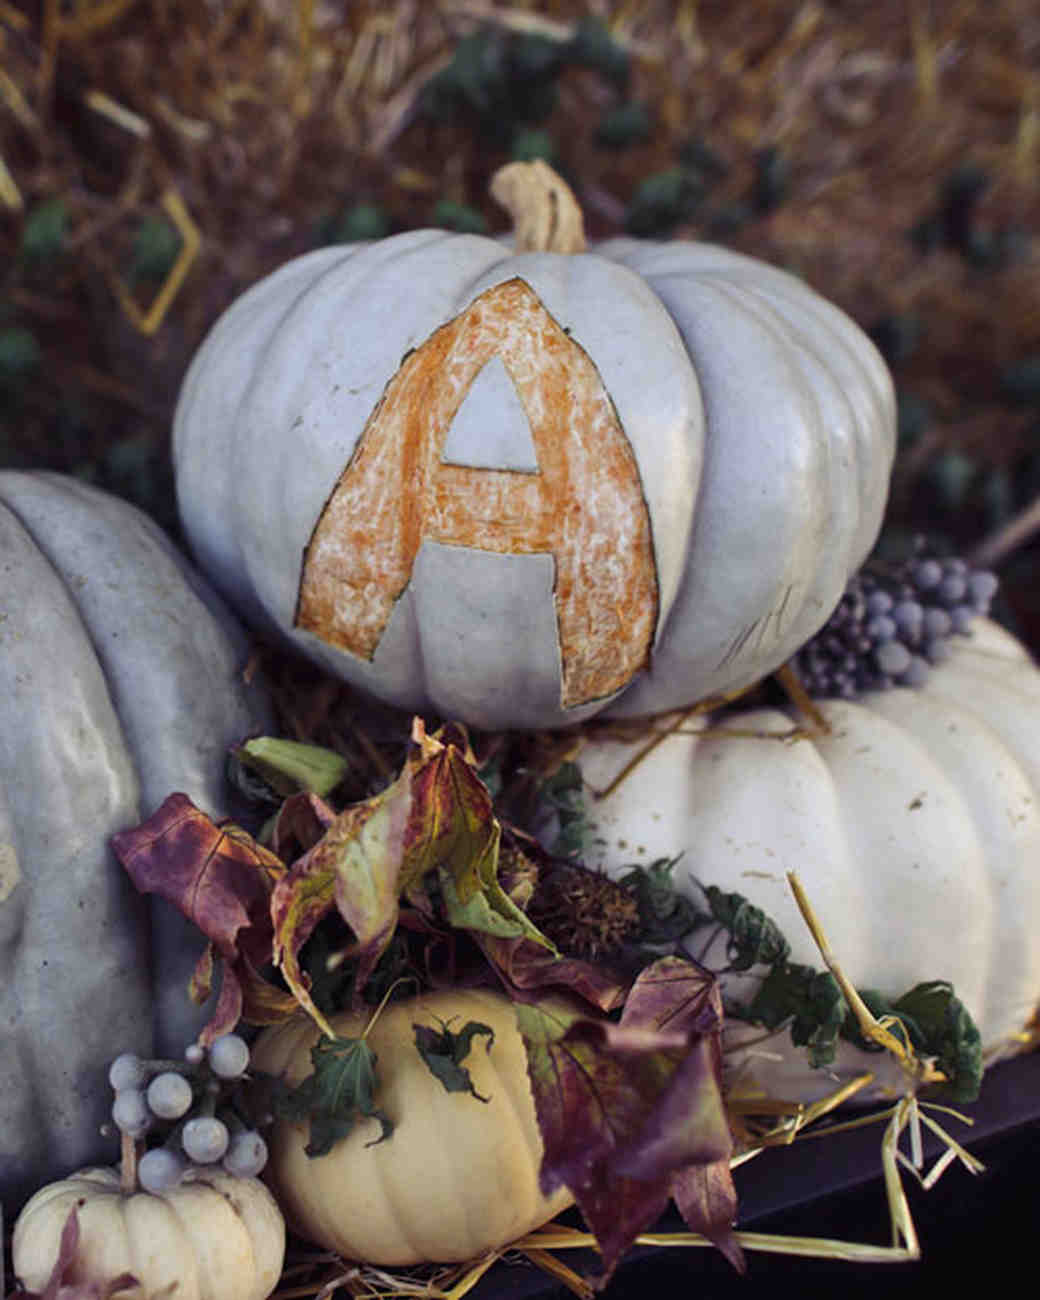 Initialed Pumpkin